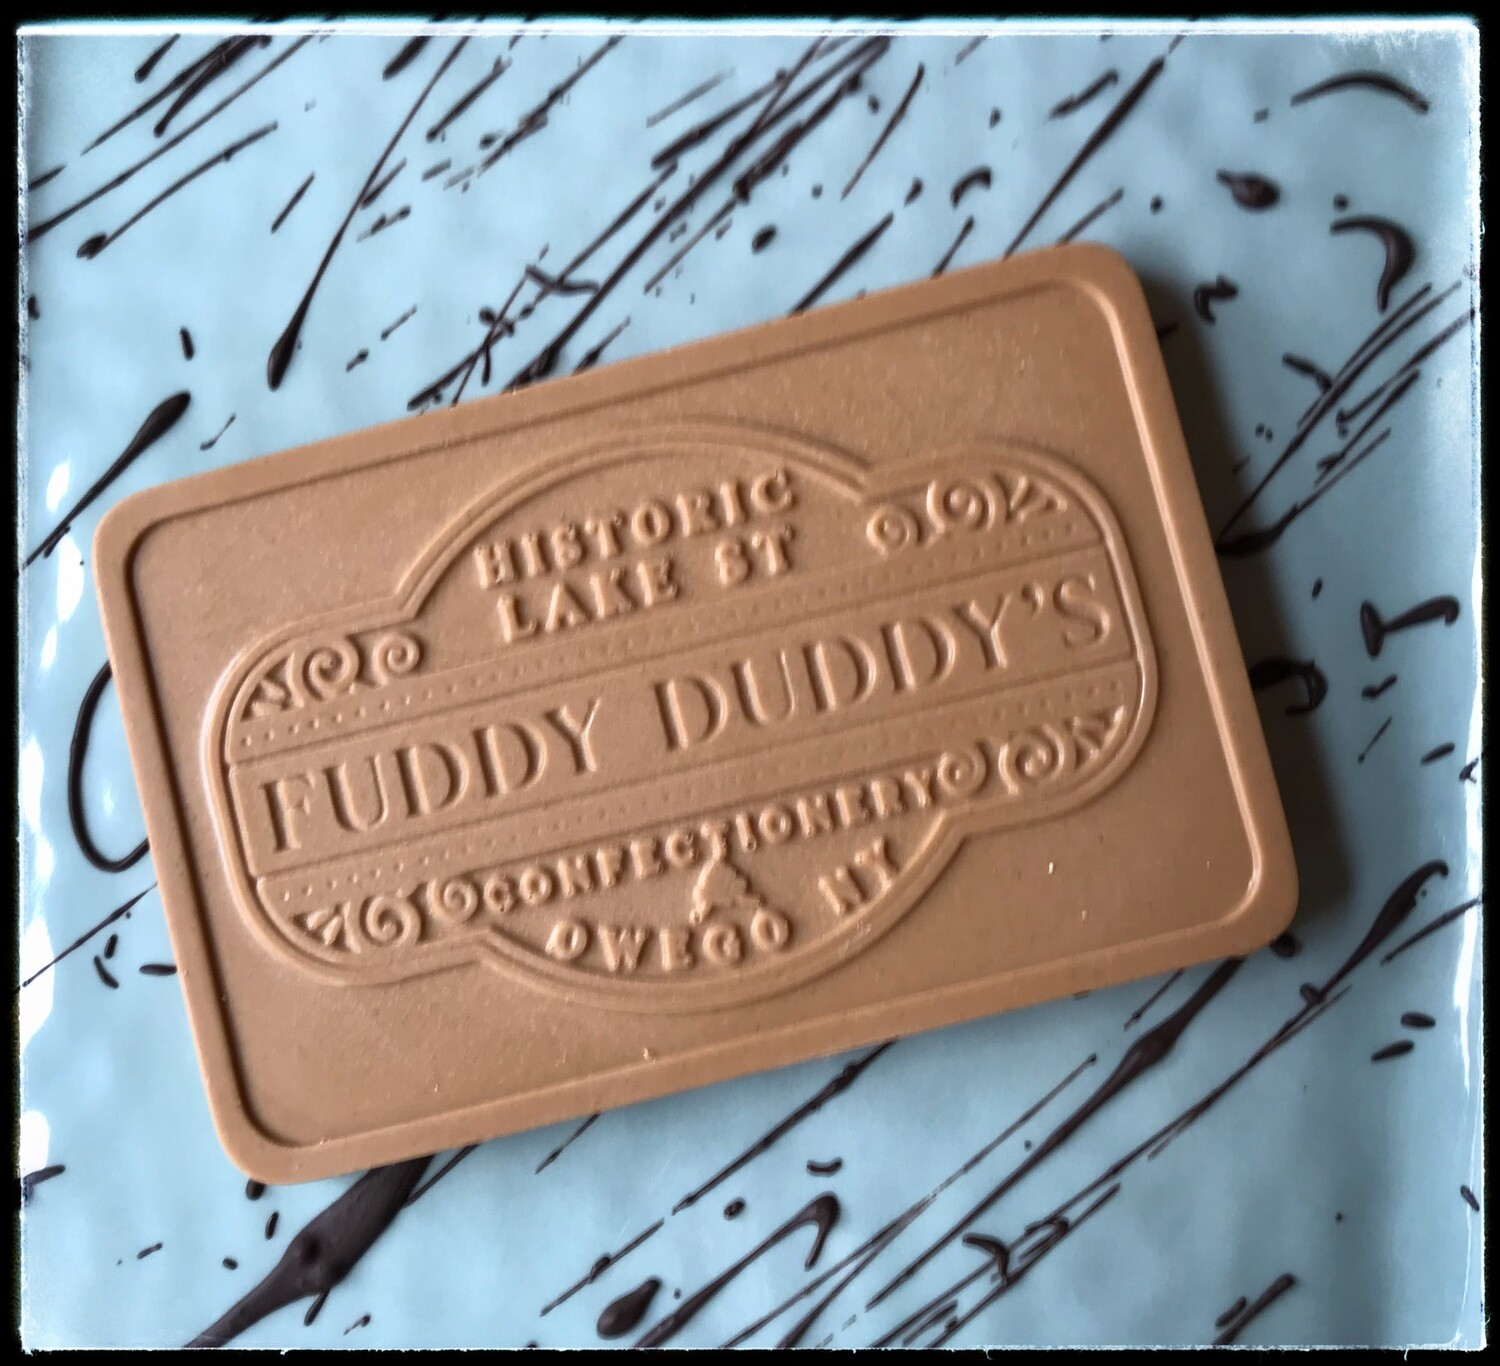 Fuddy Duddy Peanut Butter Chocolate Bar